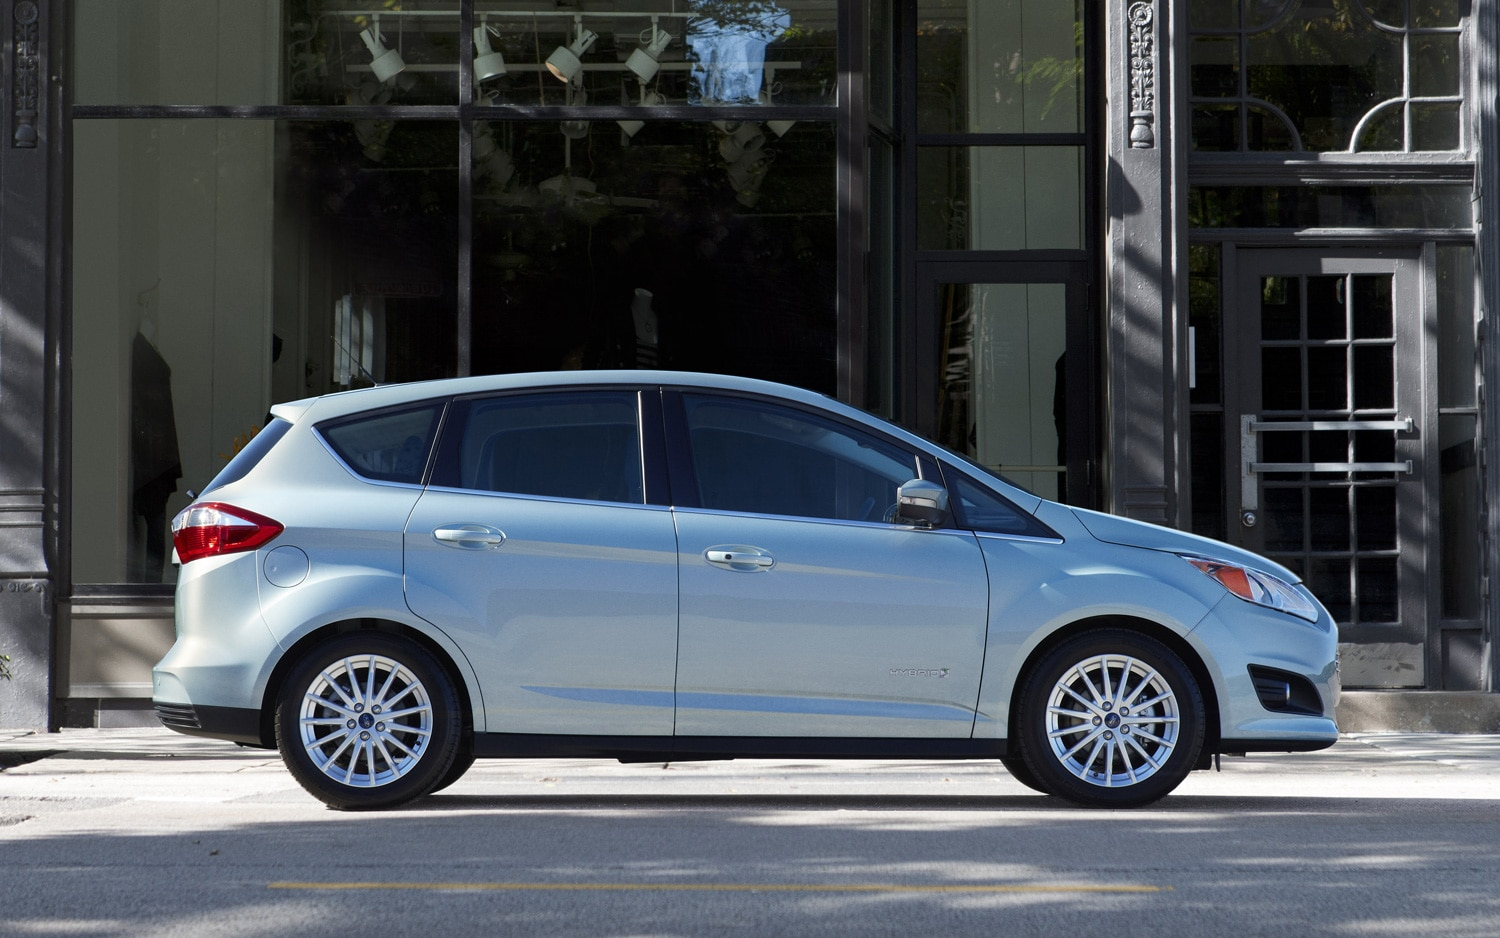 Ford C Max Automatic Problems Report Epa To Review 2013 Ford C Max Fuel Economy After